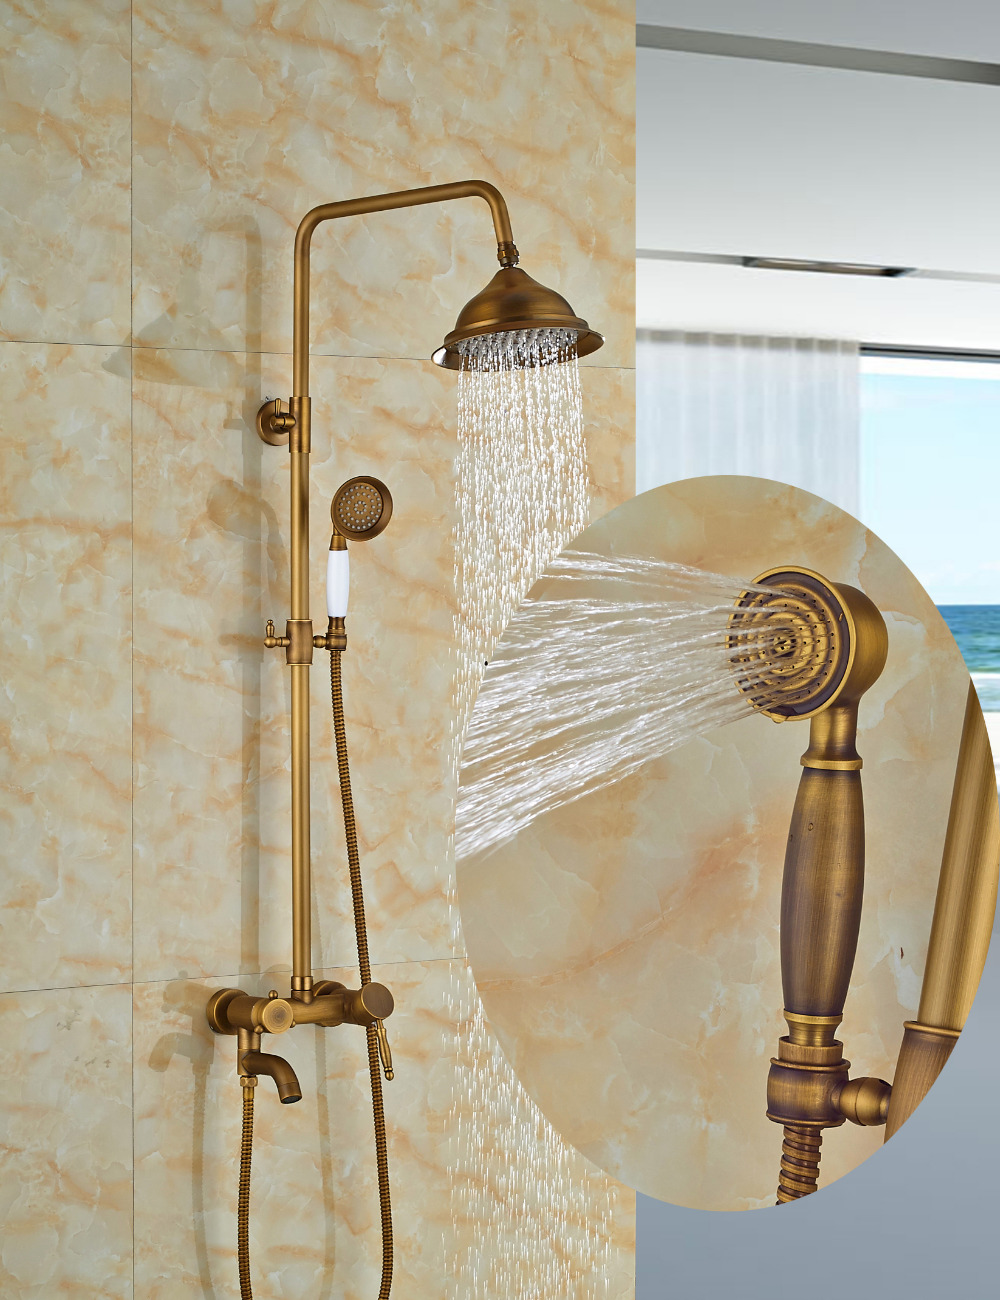 Wholesale And Retail Antique Brass Bell Style Rain Shower Faucet Set Tub Spout Mixer Tap W/ Hand Shower Wall Mounted Shower